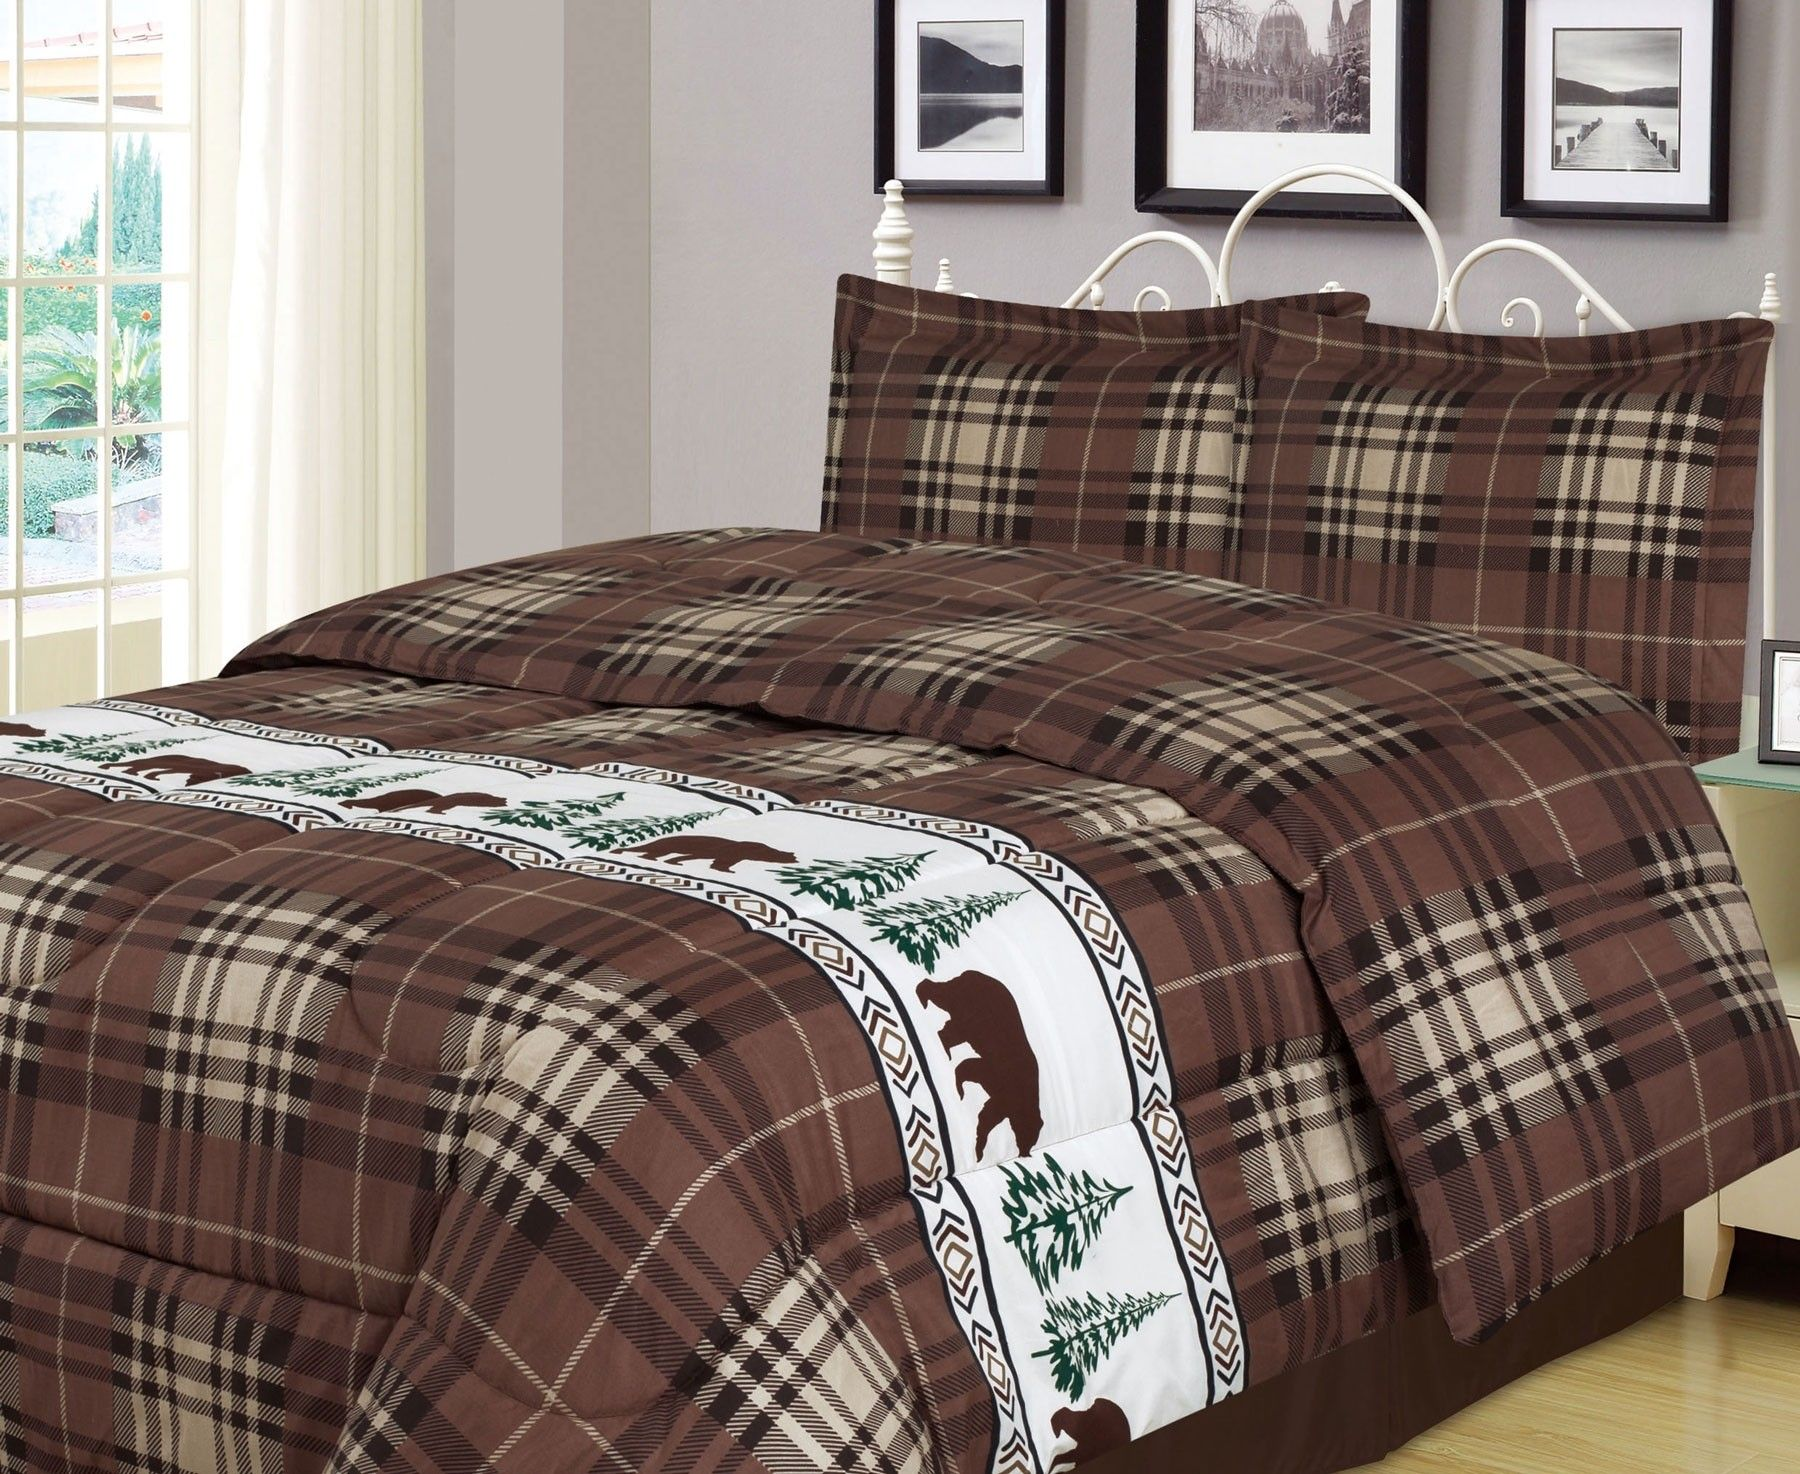 com beddingsuperstore cabin carstens bedding plaid sagamore lake category comforters by lodge cabins